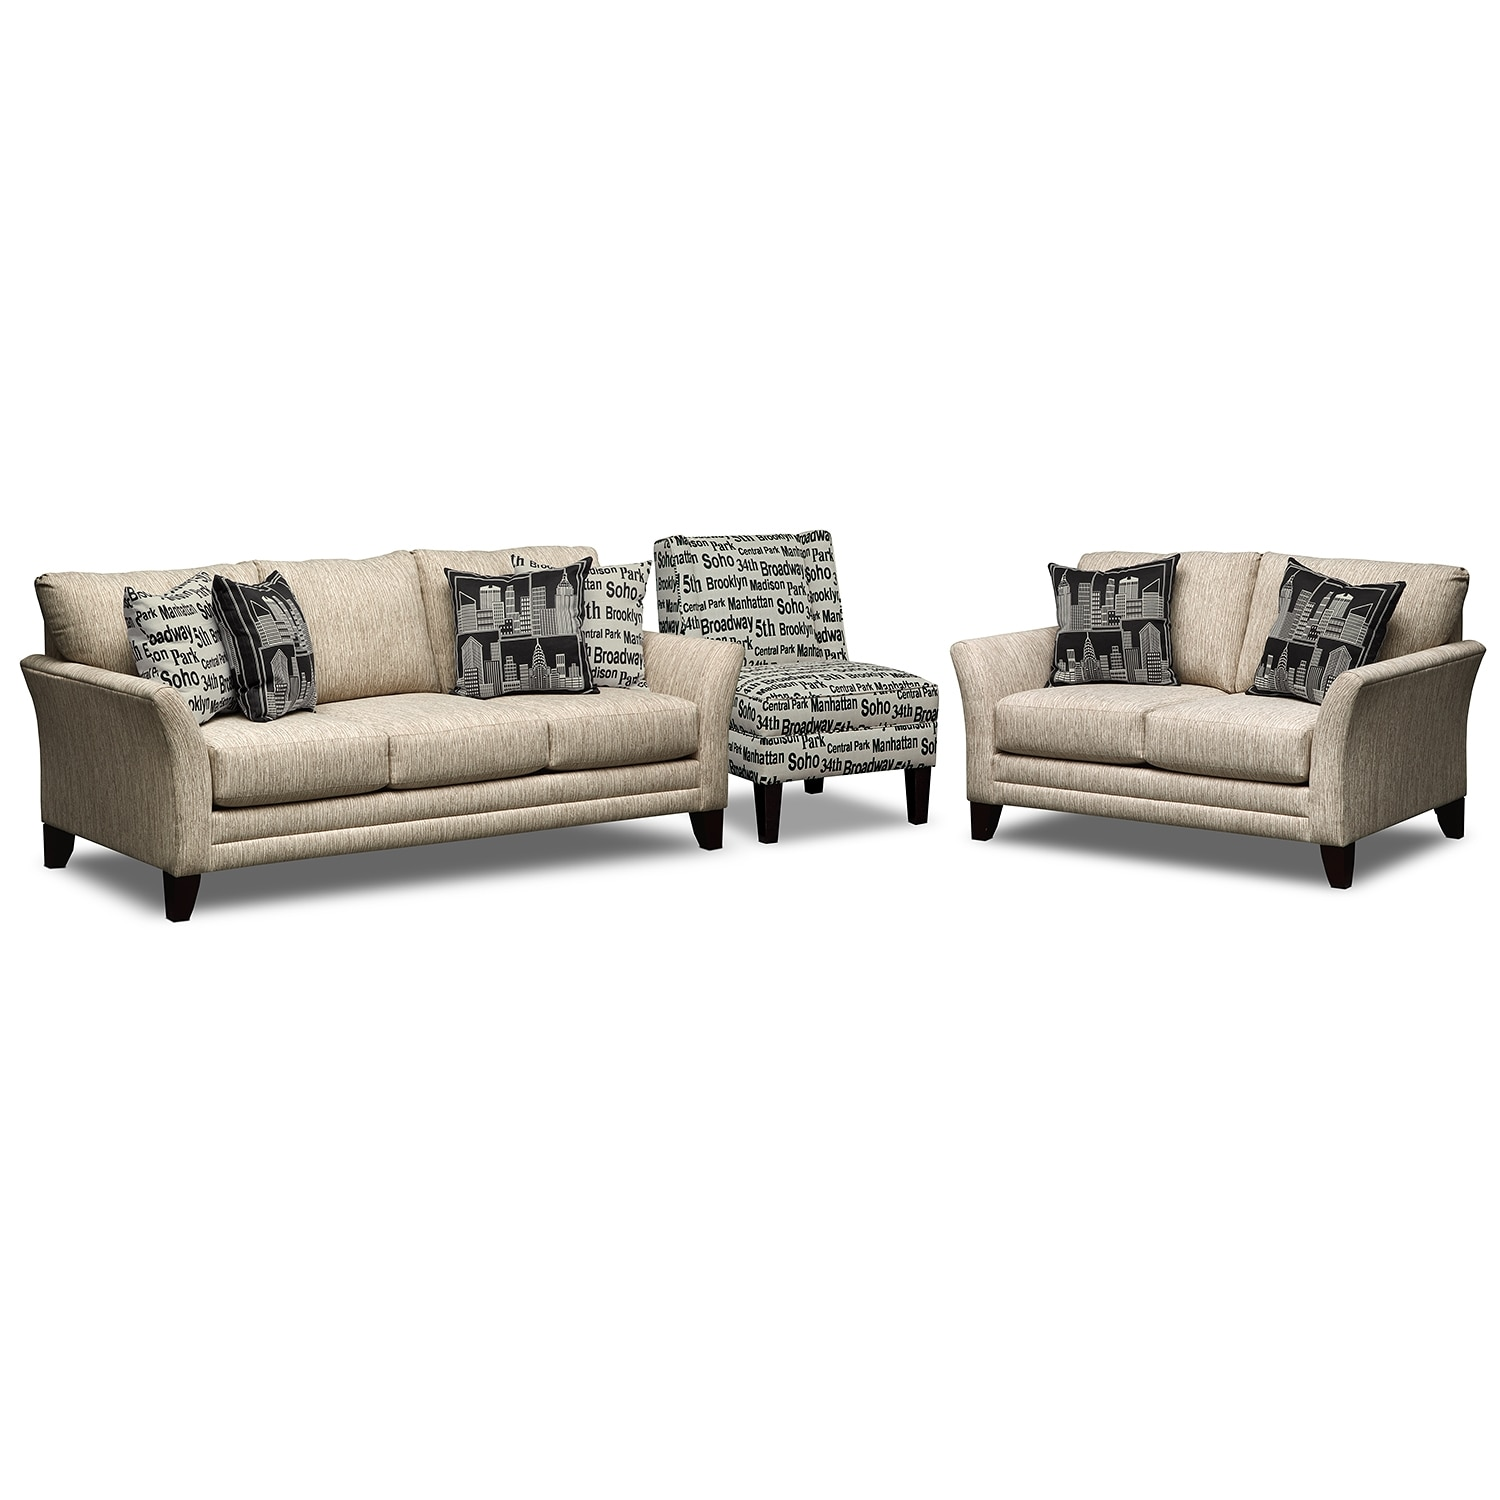 Union Square Upholstery 3 Pc Living Room W Accent Chair Value City Furniture